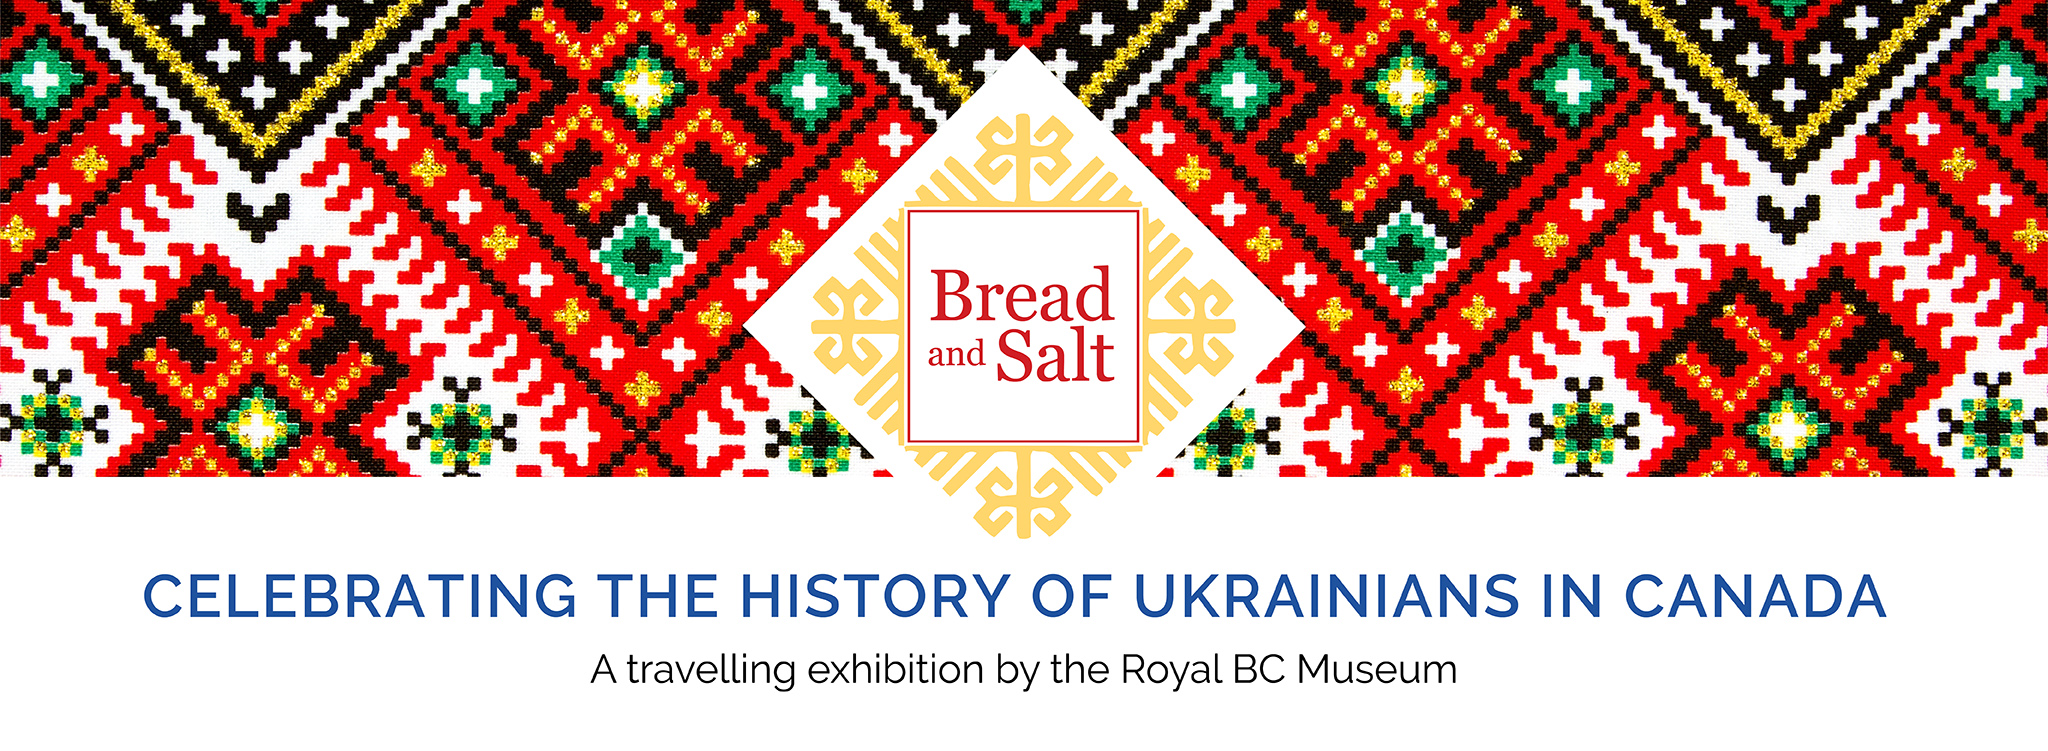 Kelowna Museums Exhibits BreadSalt Internal Event Image 2048x751 Home